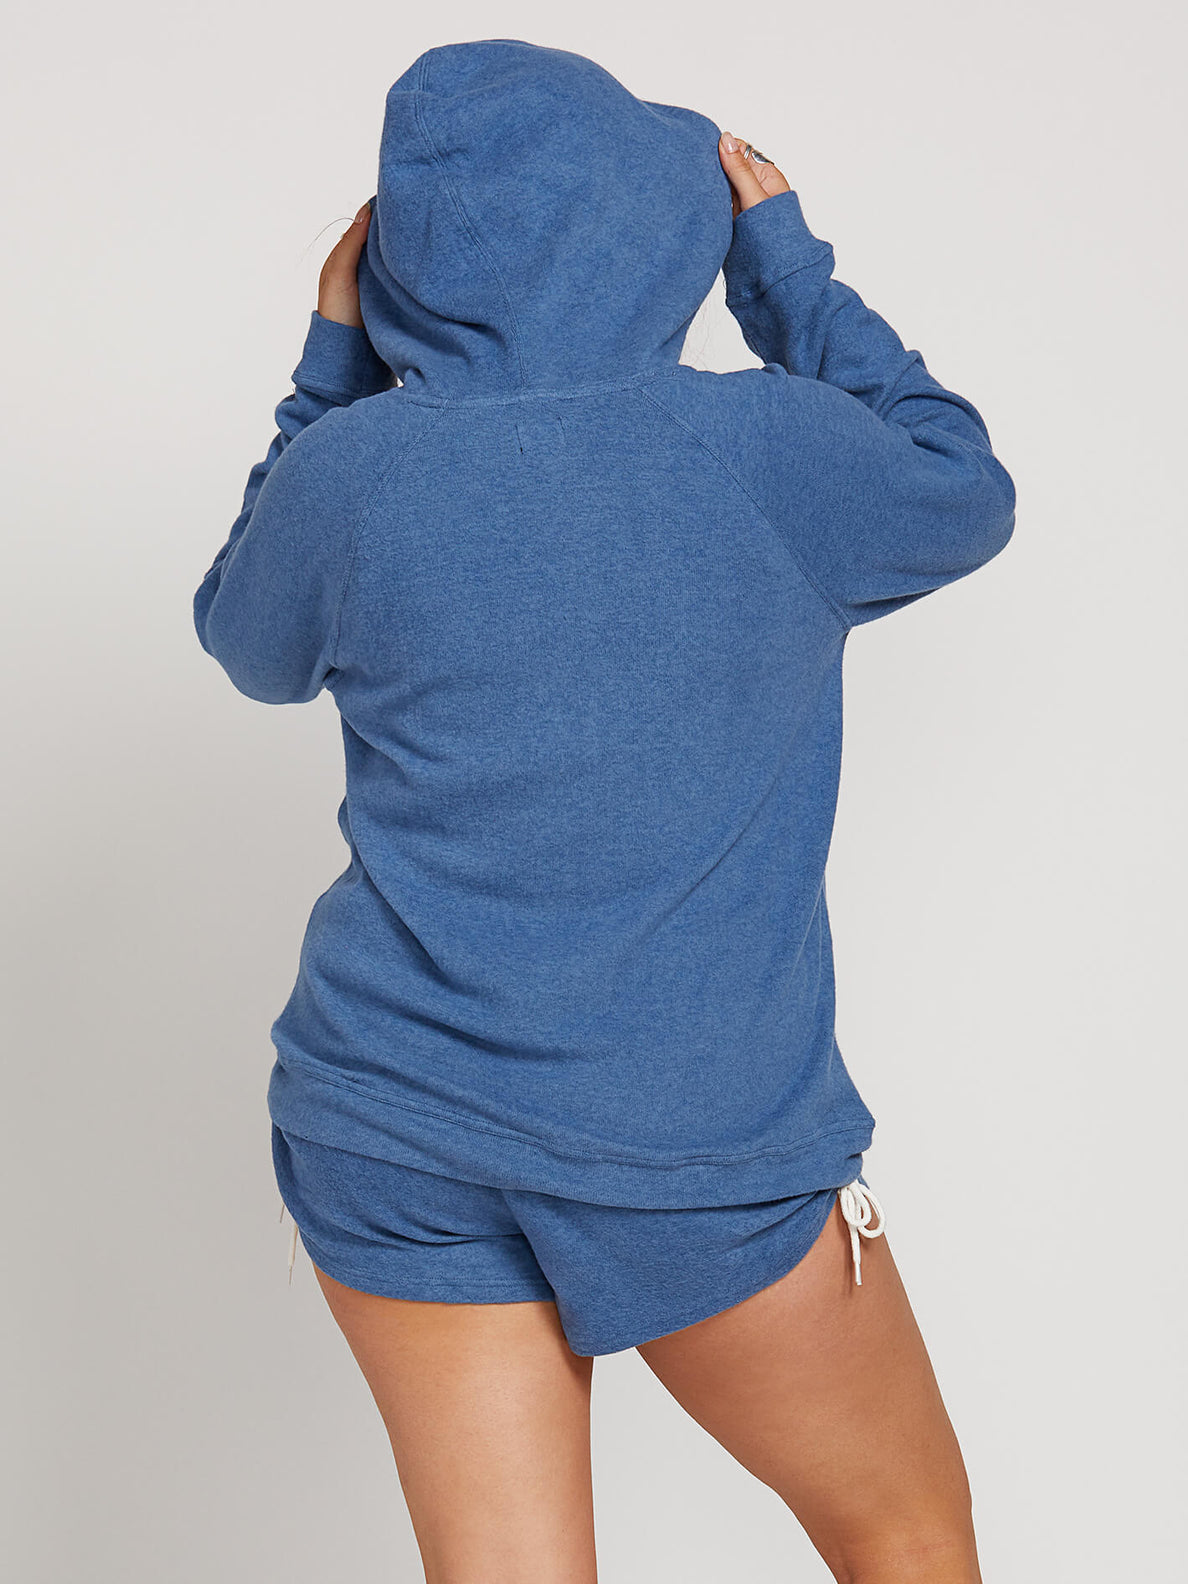 Lived In Lounge Hoodie In Blue Drift, Back Extended Size View